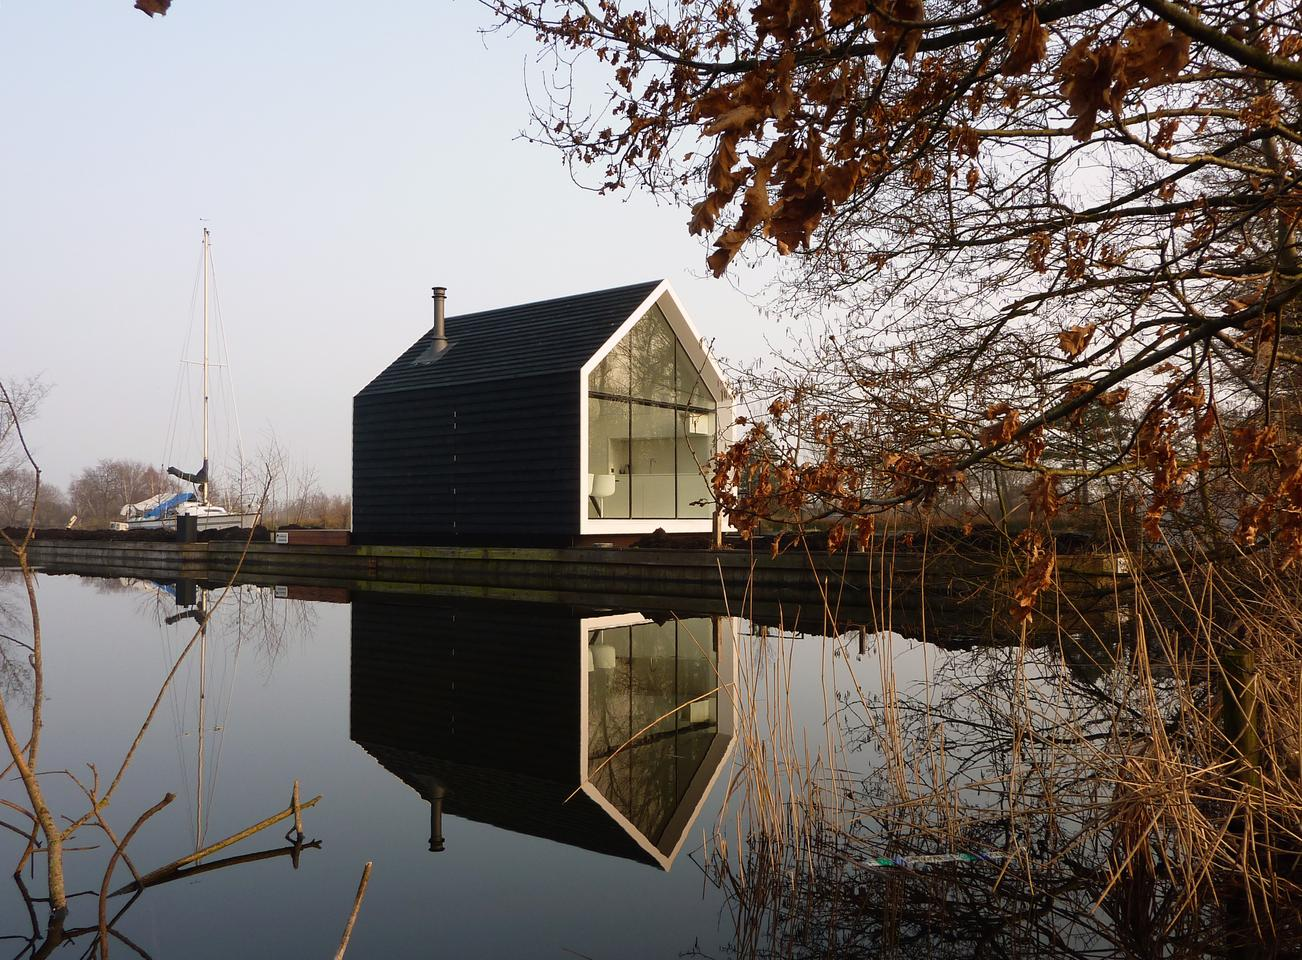 2by4-architects' Summer House (Photo: 2by4-architects)